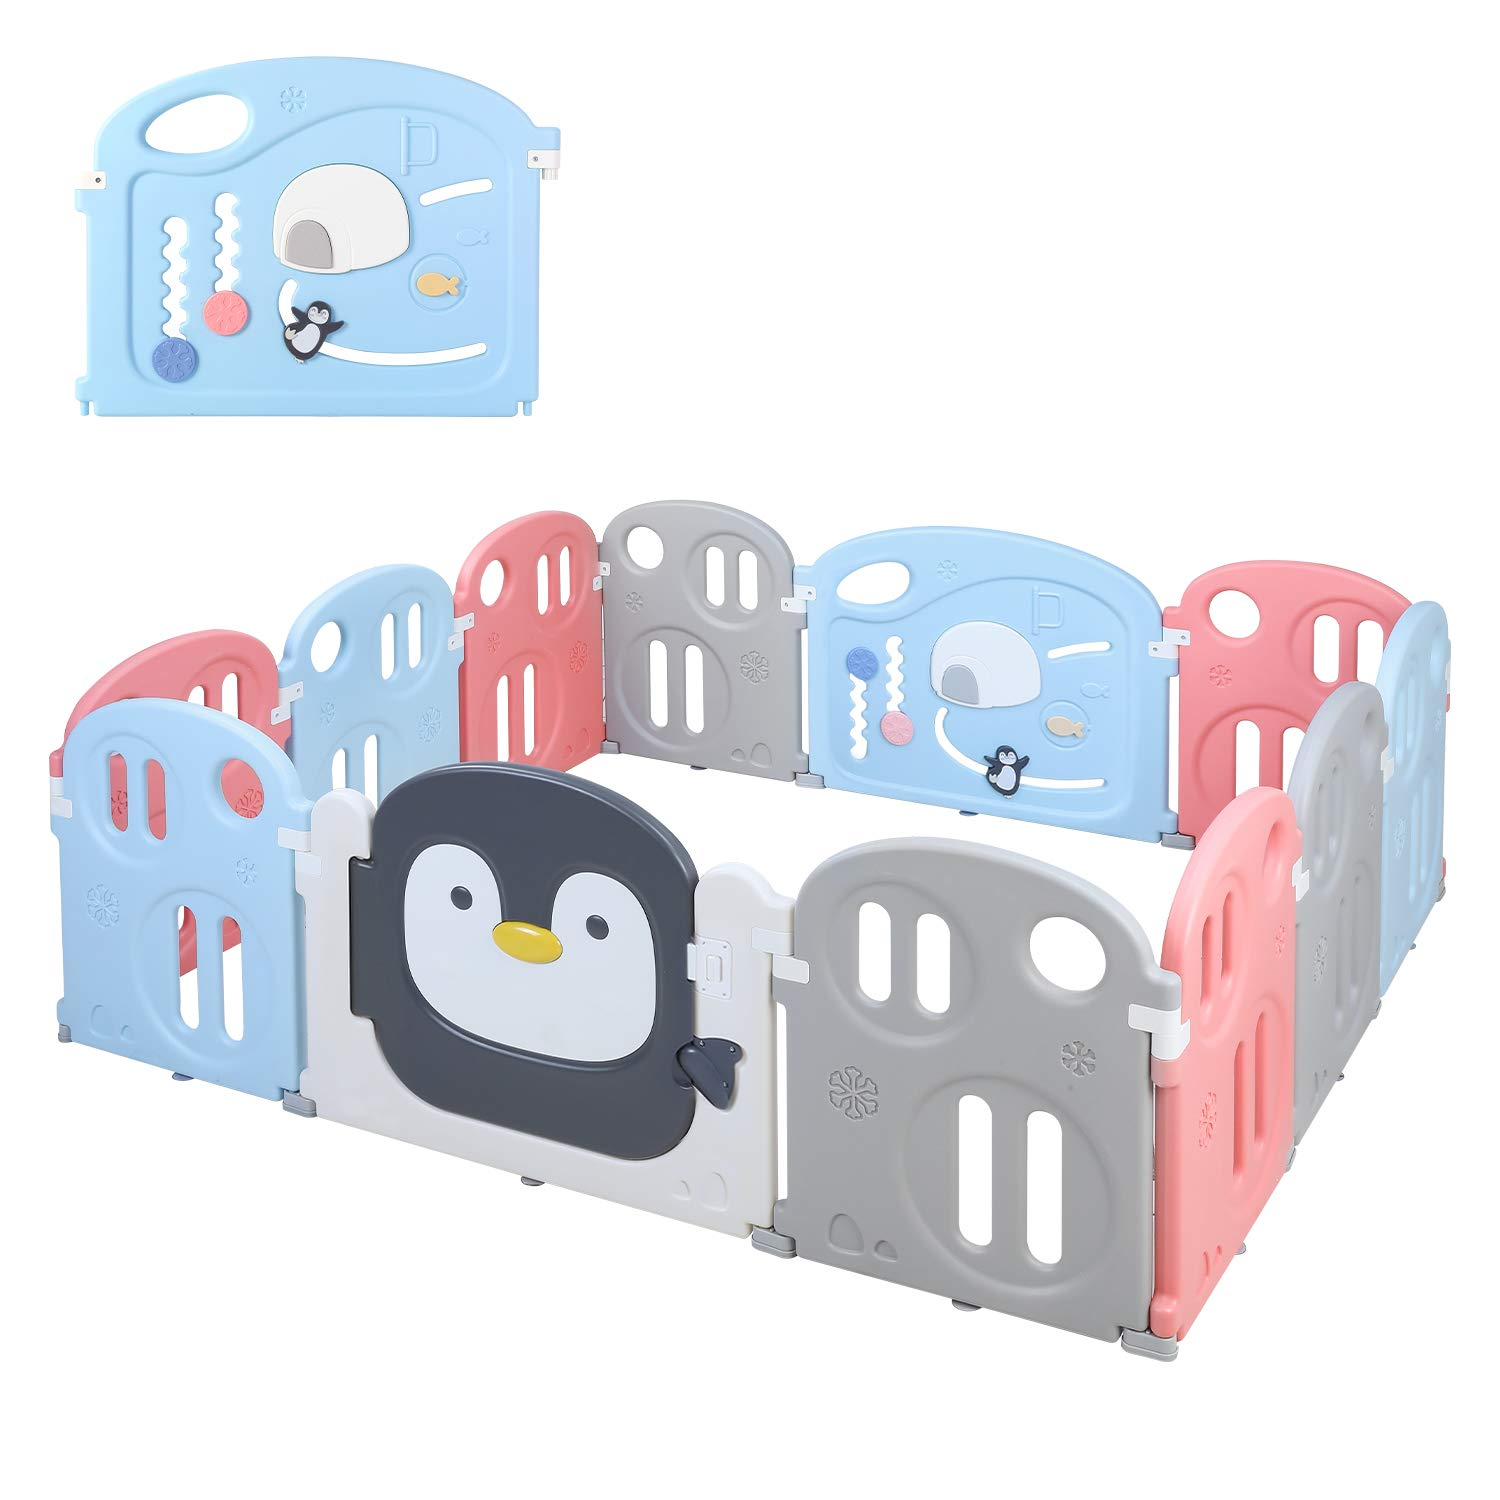 "POTBY Baby Playpen 12 Panel Kids Activity Center Playard, Penguin Pattern with Game Gate &Double Lock Door Gate& Storage Pocket, Fun Time Home Indoor Outdoor Fence for Toddler Boys Girls, 70""x 59"""